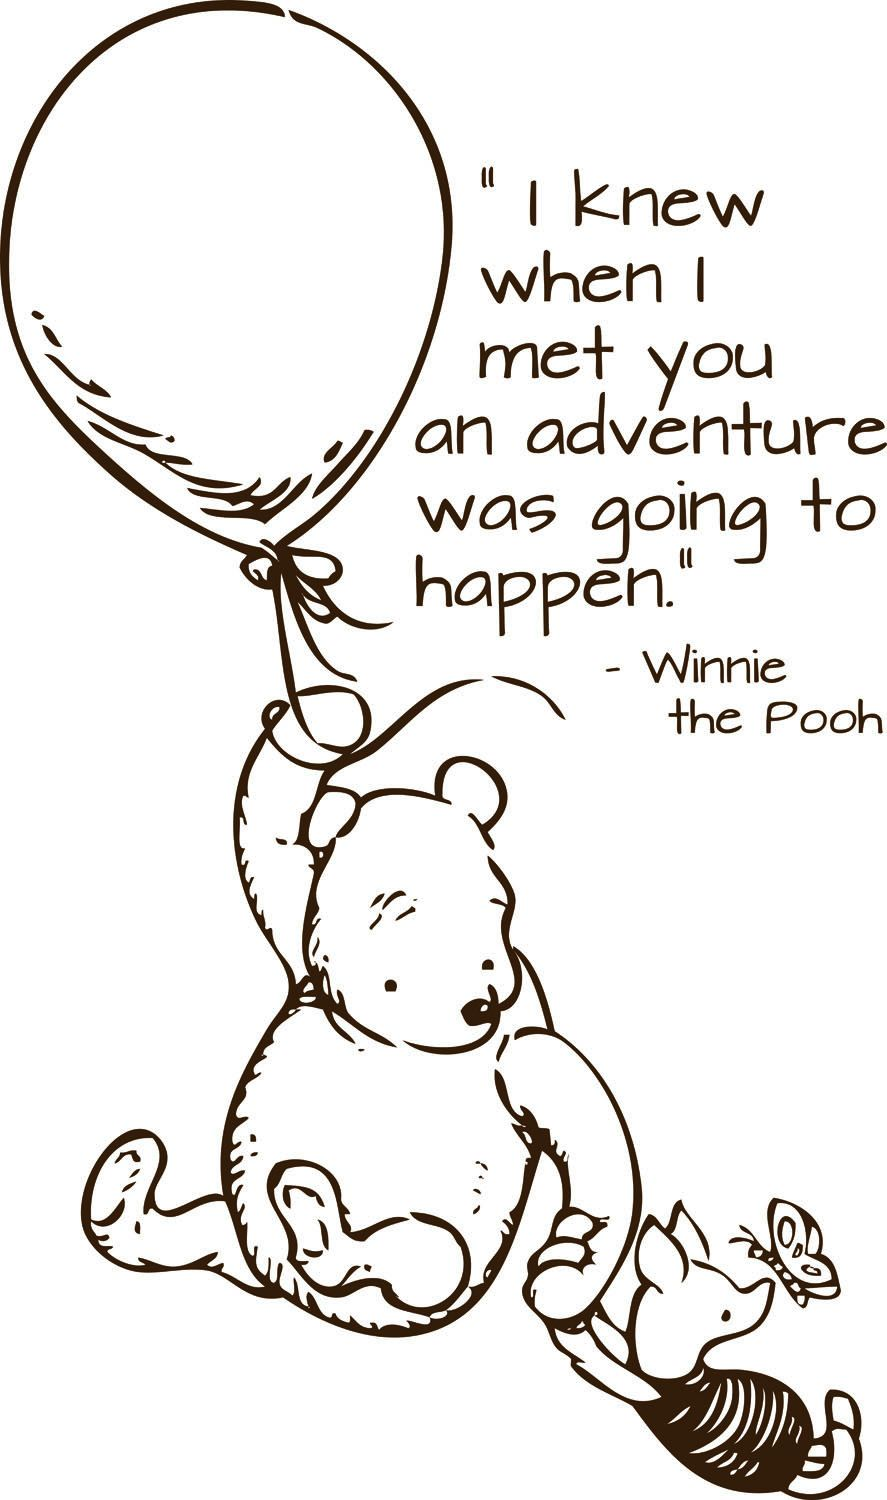 Pooh Quotes About Friendship Classic Pooh Wall Decal Adventure Quotewildgreenrose On Etsy